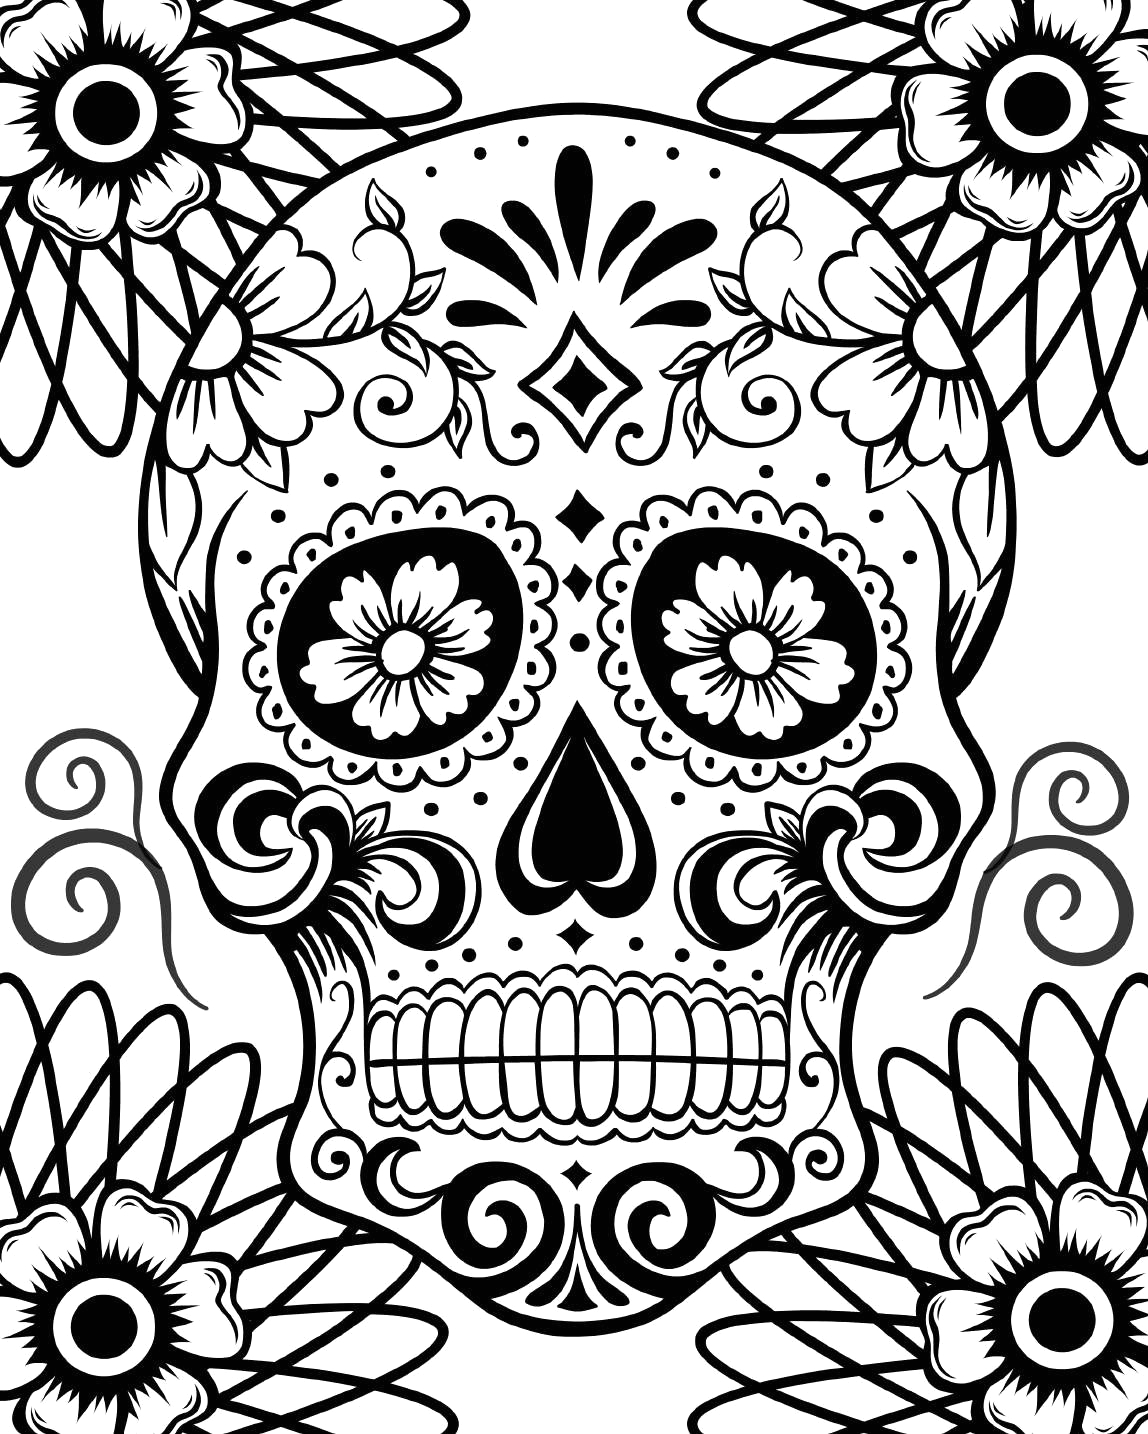 Day Of the Dead Free Coloring Pages Free Printable Day Of the Dead Coloring Pages Best